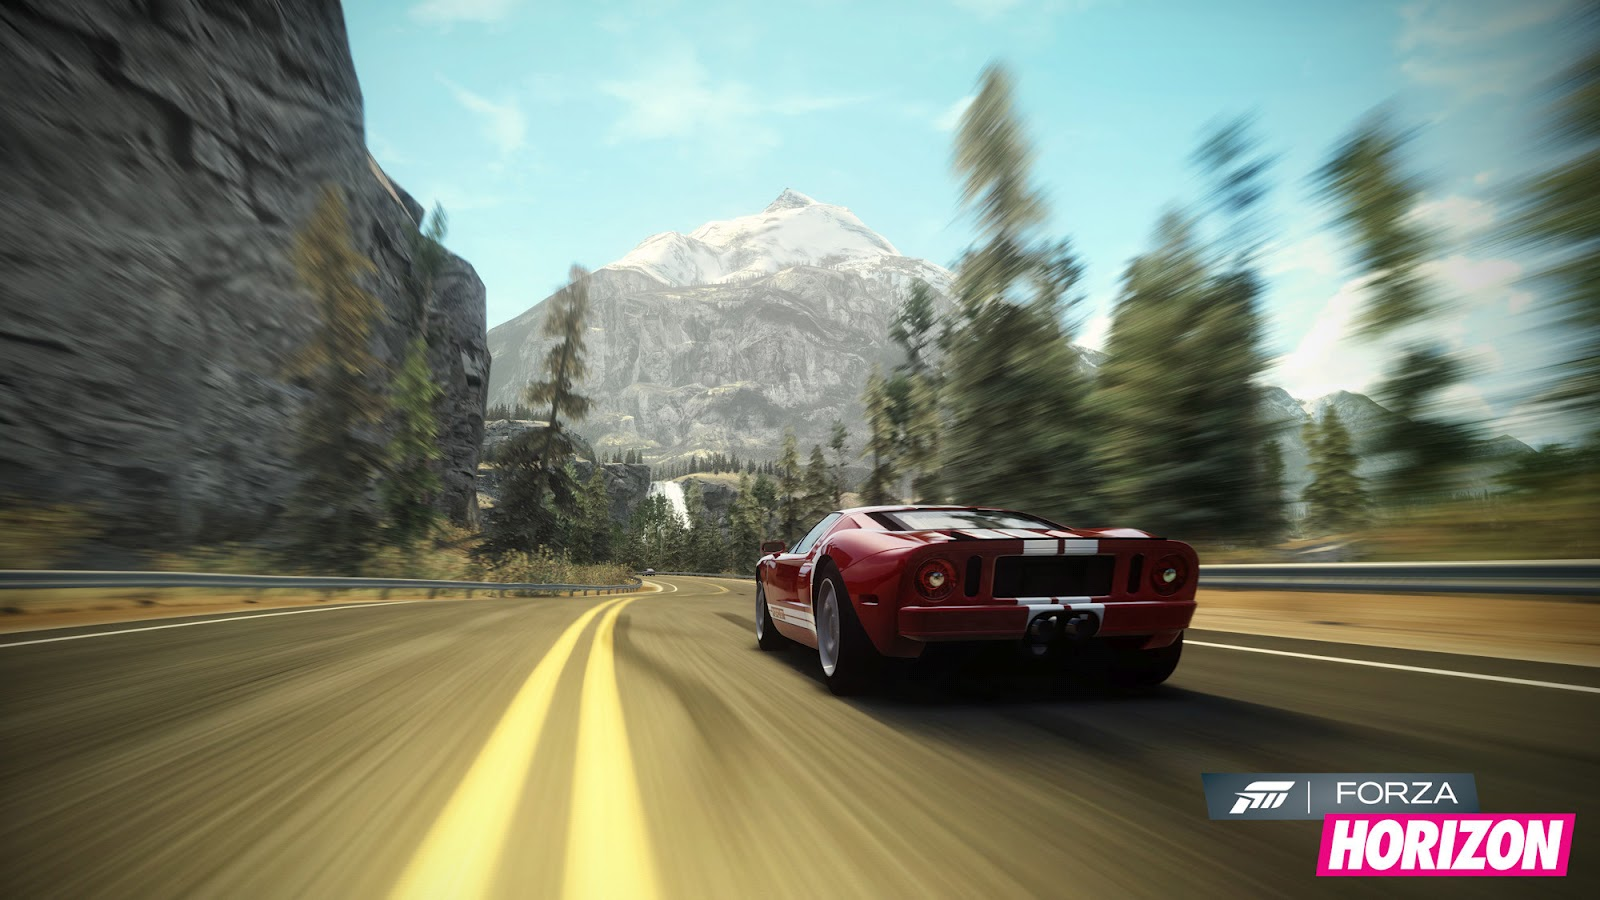 Forza Horizon HD & Widescreen Wallpaper 0.293052980068809